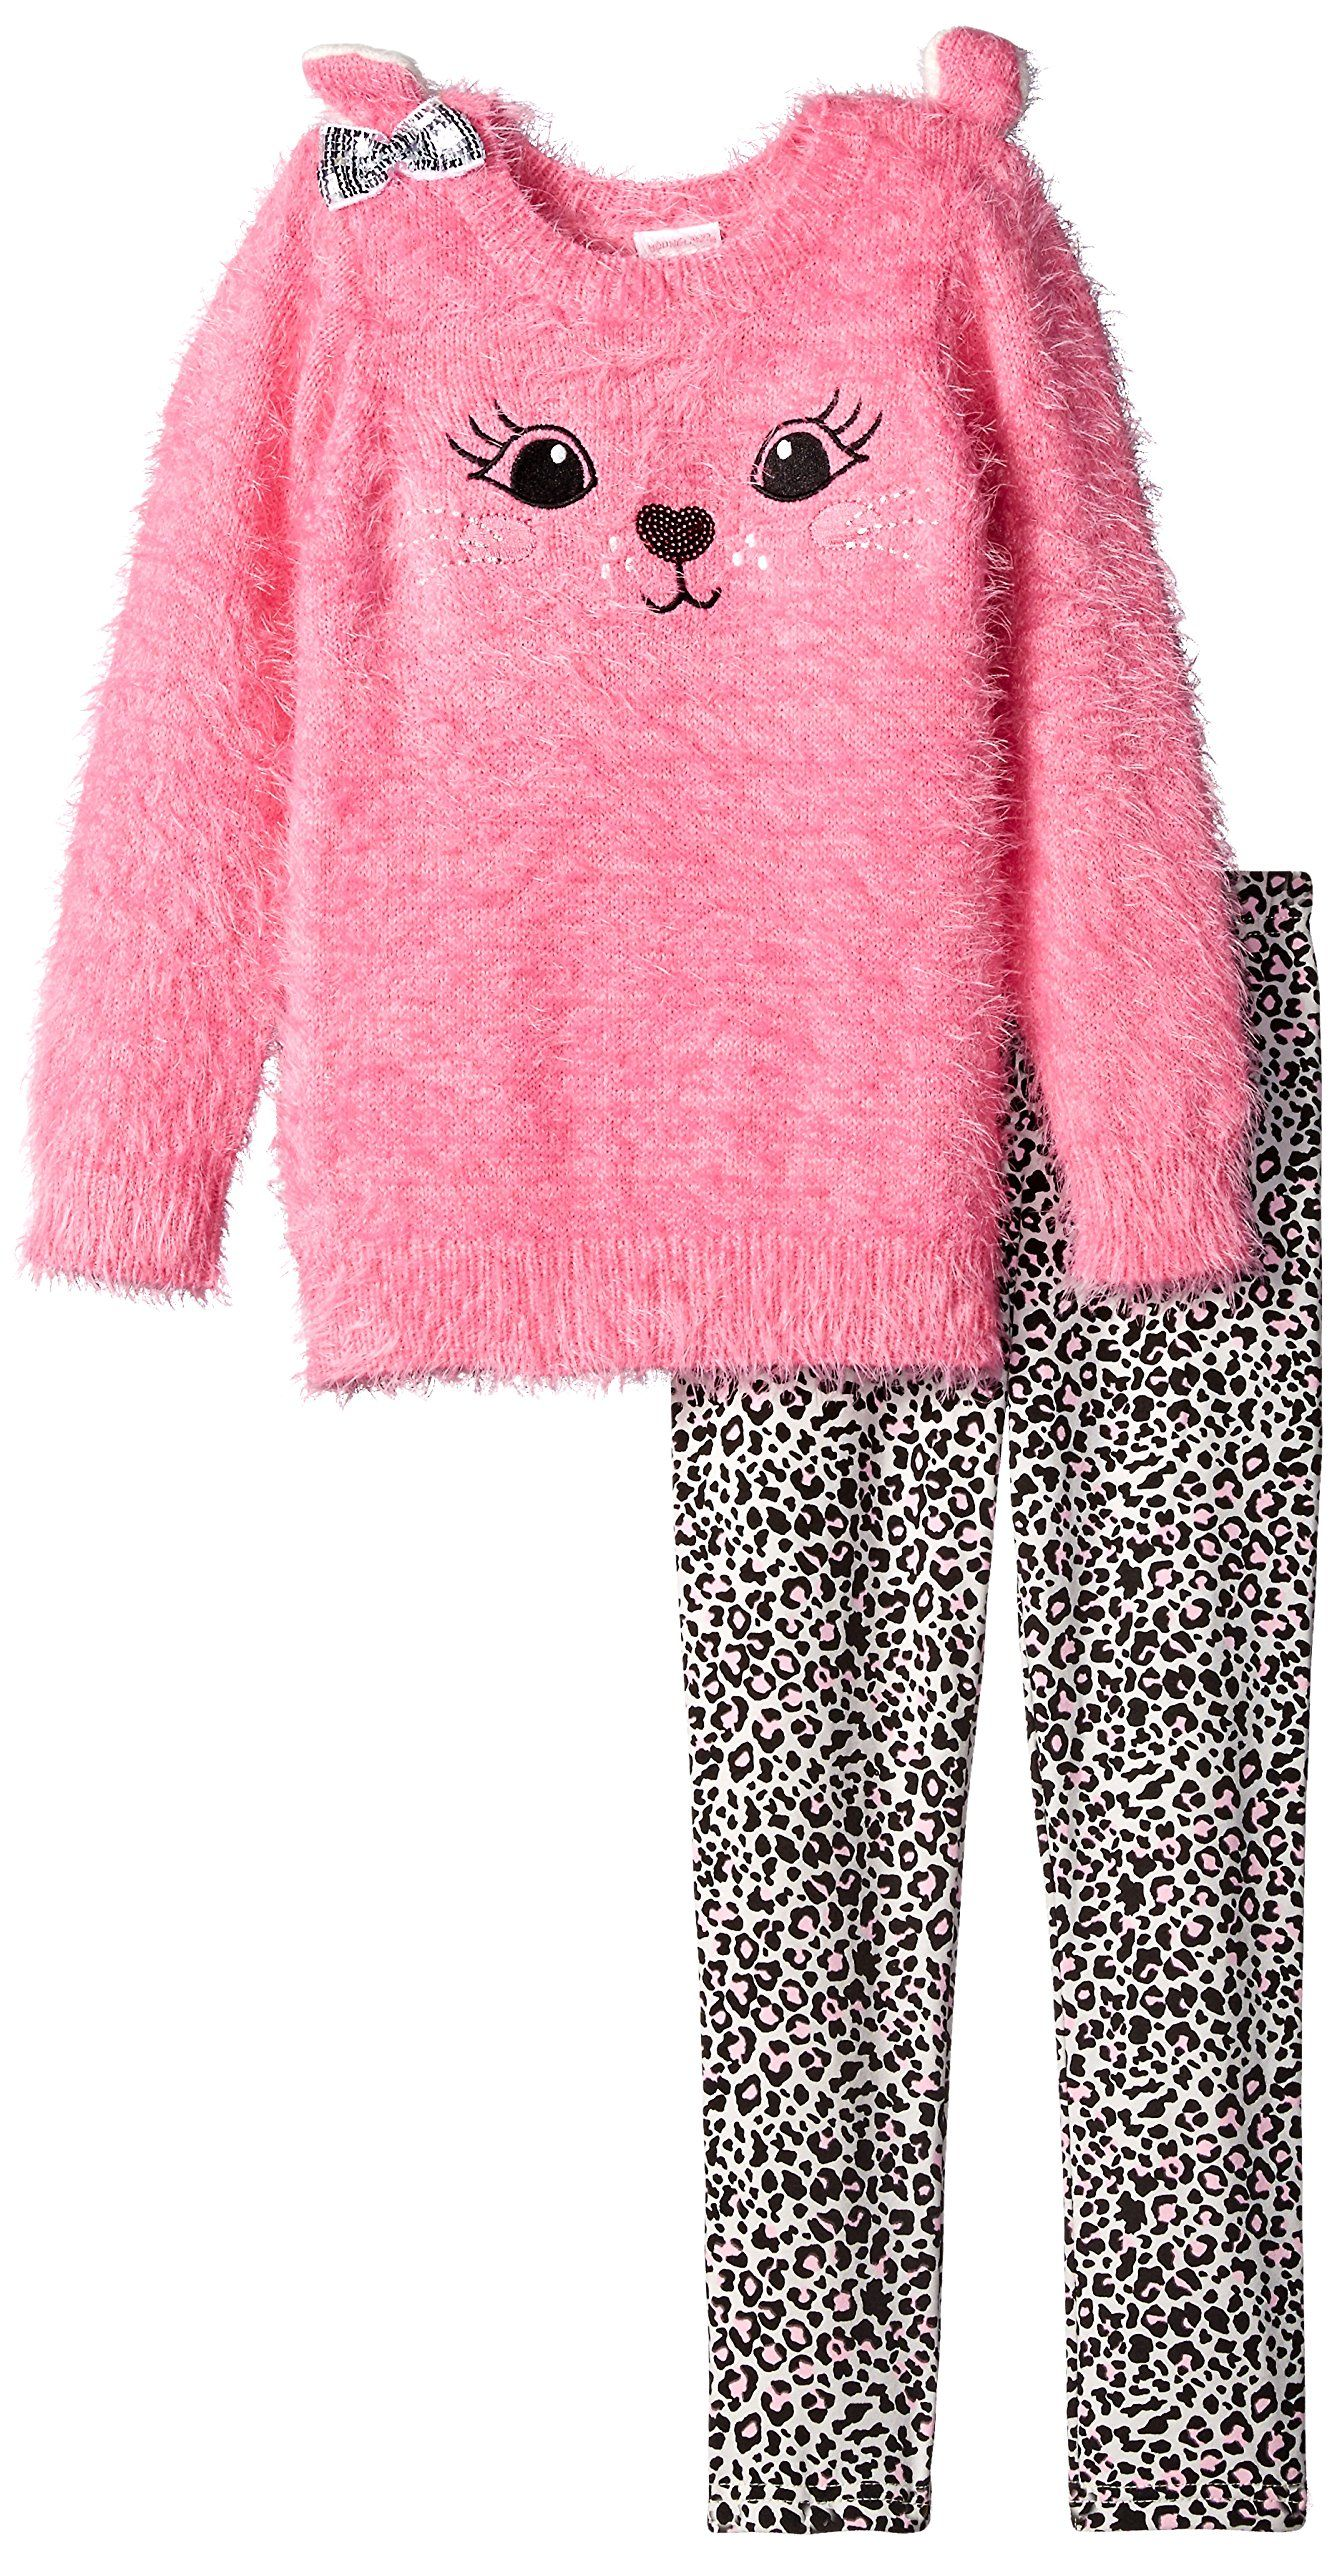 bed4658f6f1c0 Youngland Little Girls' Cat Tunic Sweater with Knit Leopard Print Legging,  Pink/Multi